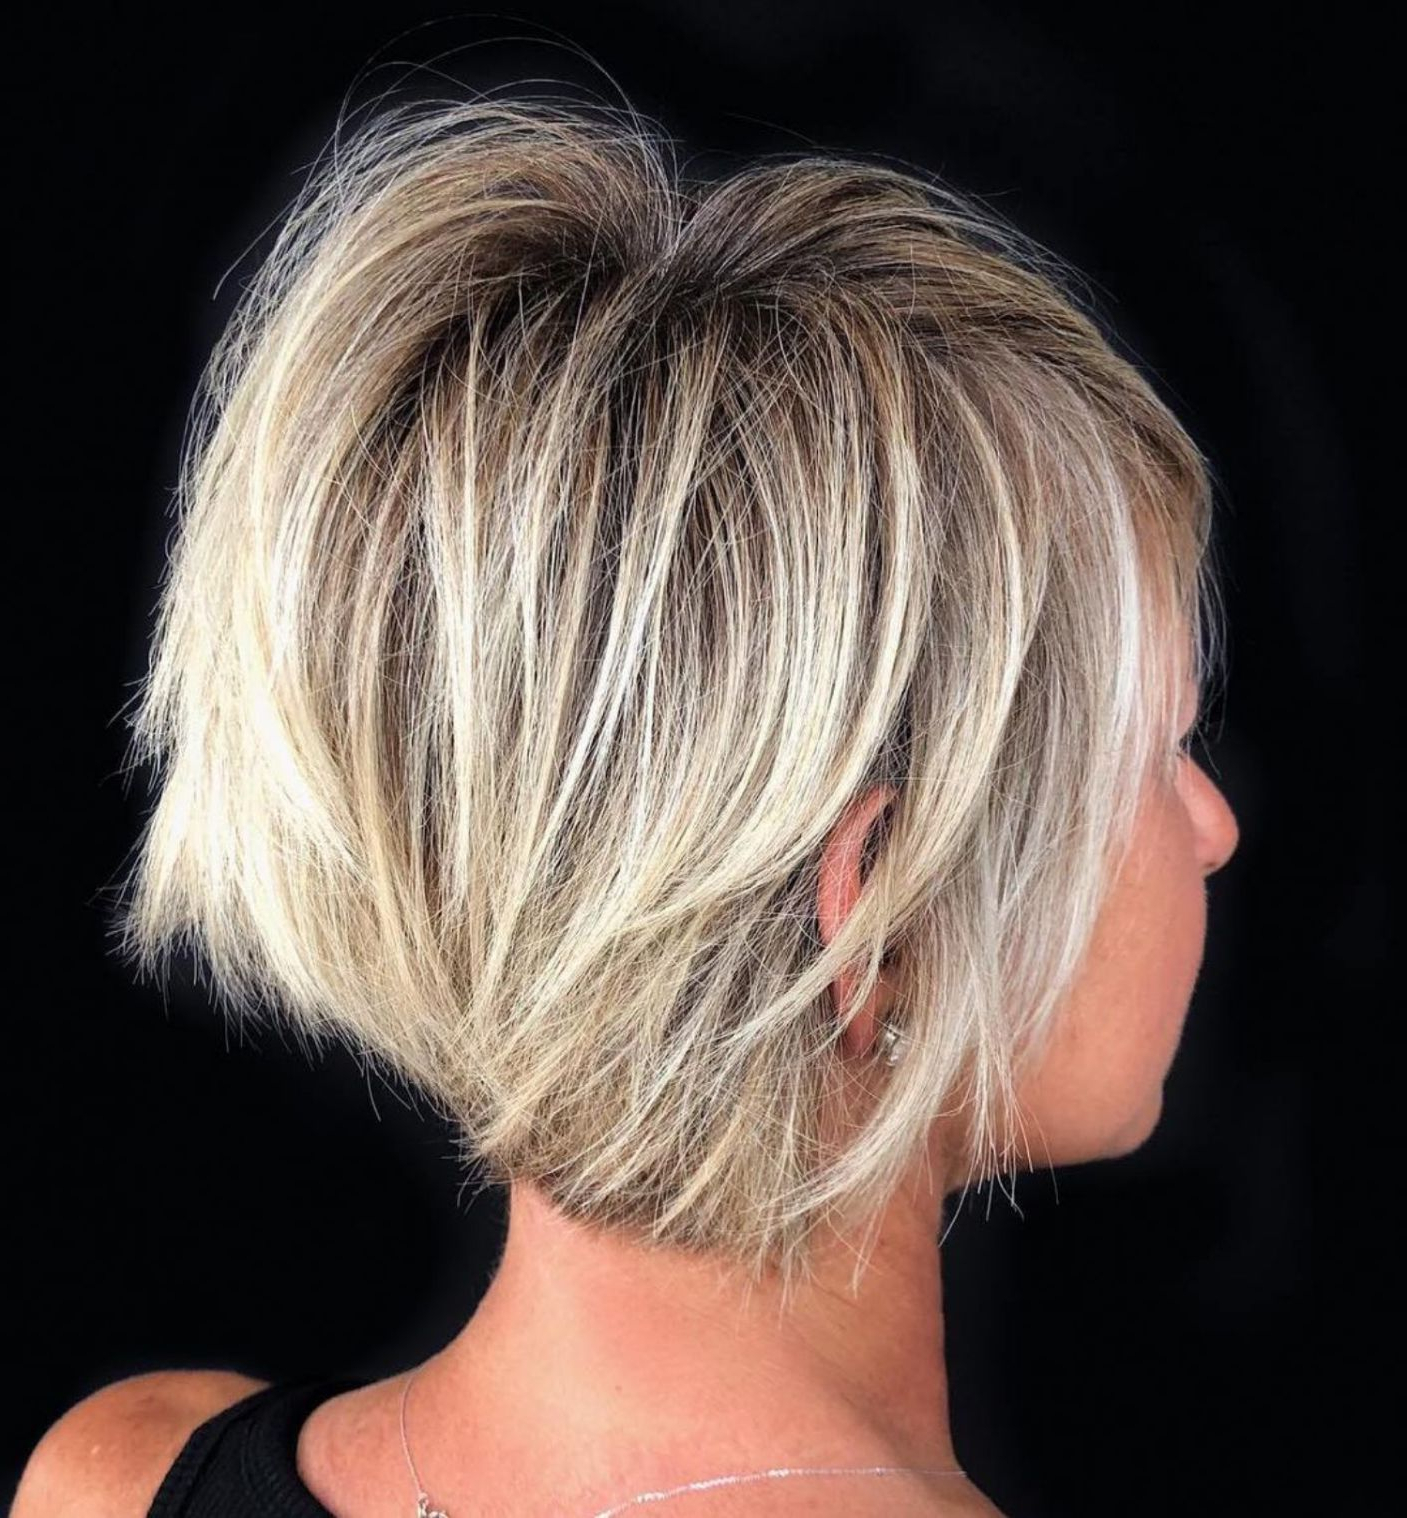 60 Best Short Bob Haircuts And Hairstyles For Women In 2018 | Hair In Stacked Blonde Balayage Pixie Hairstyles For Brunettes (View 11 of 20)